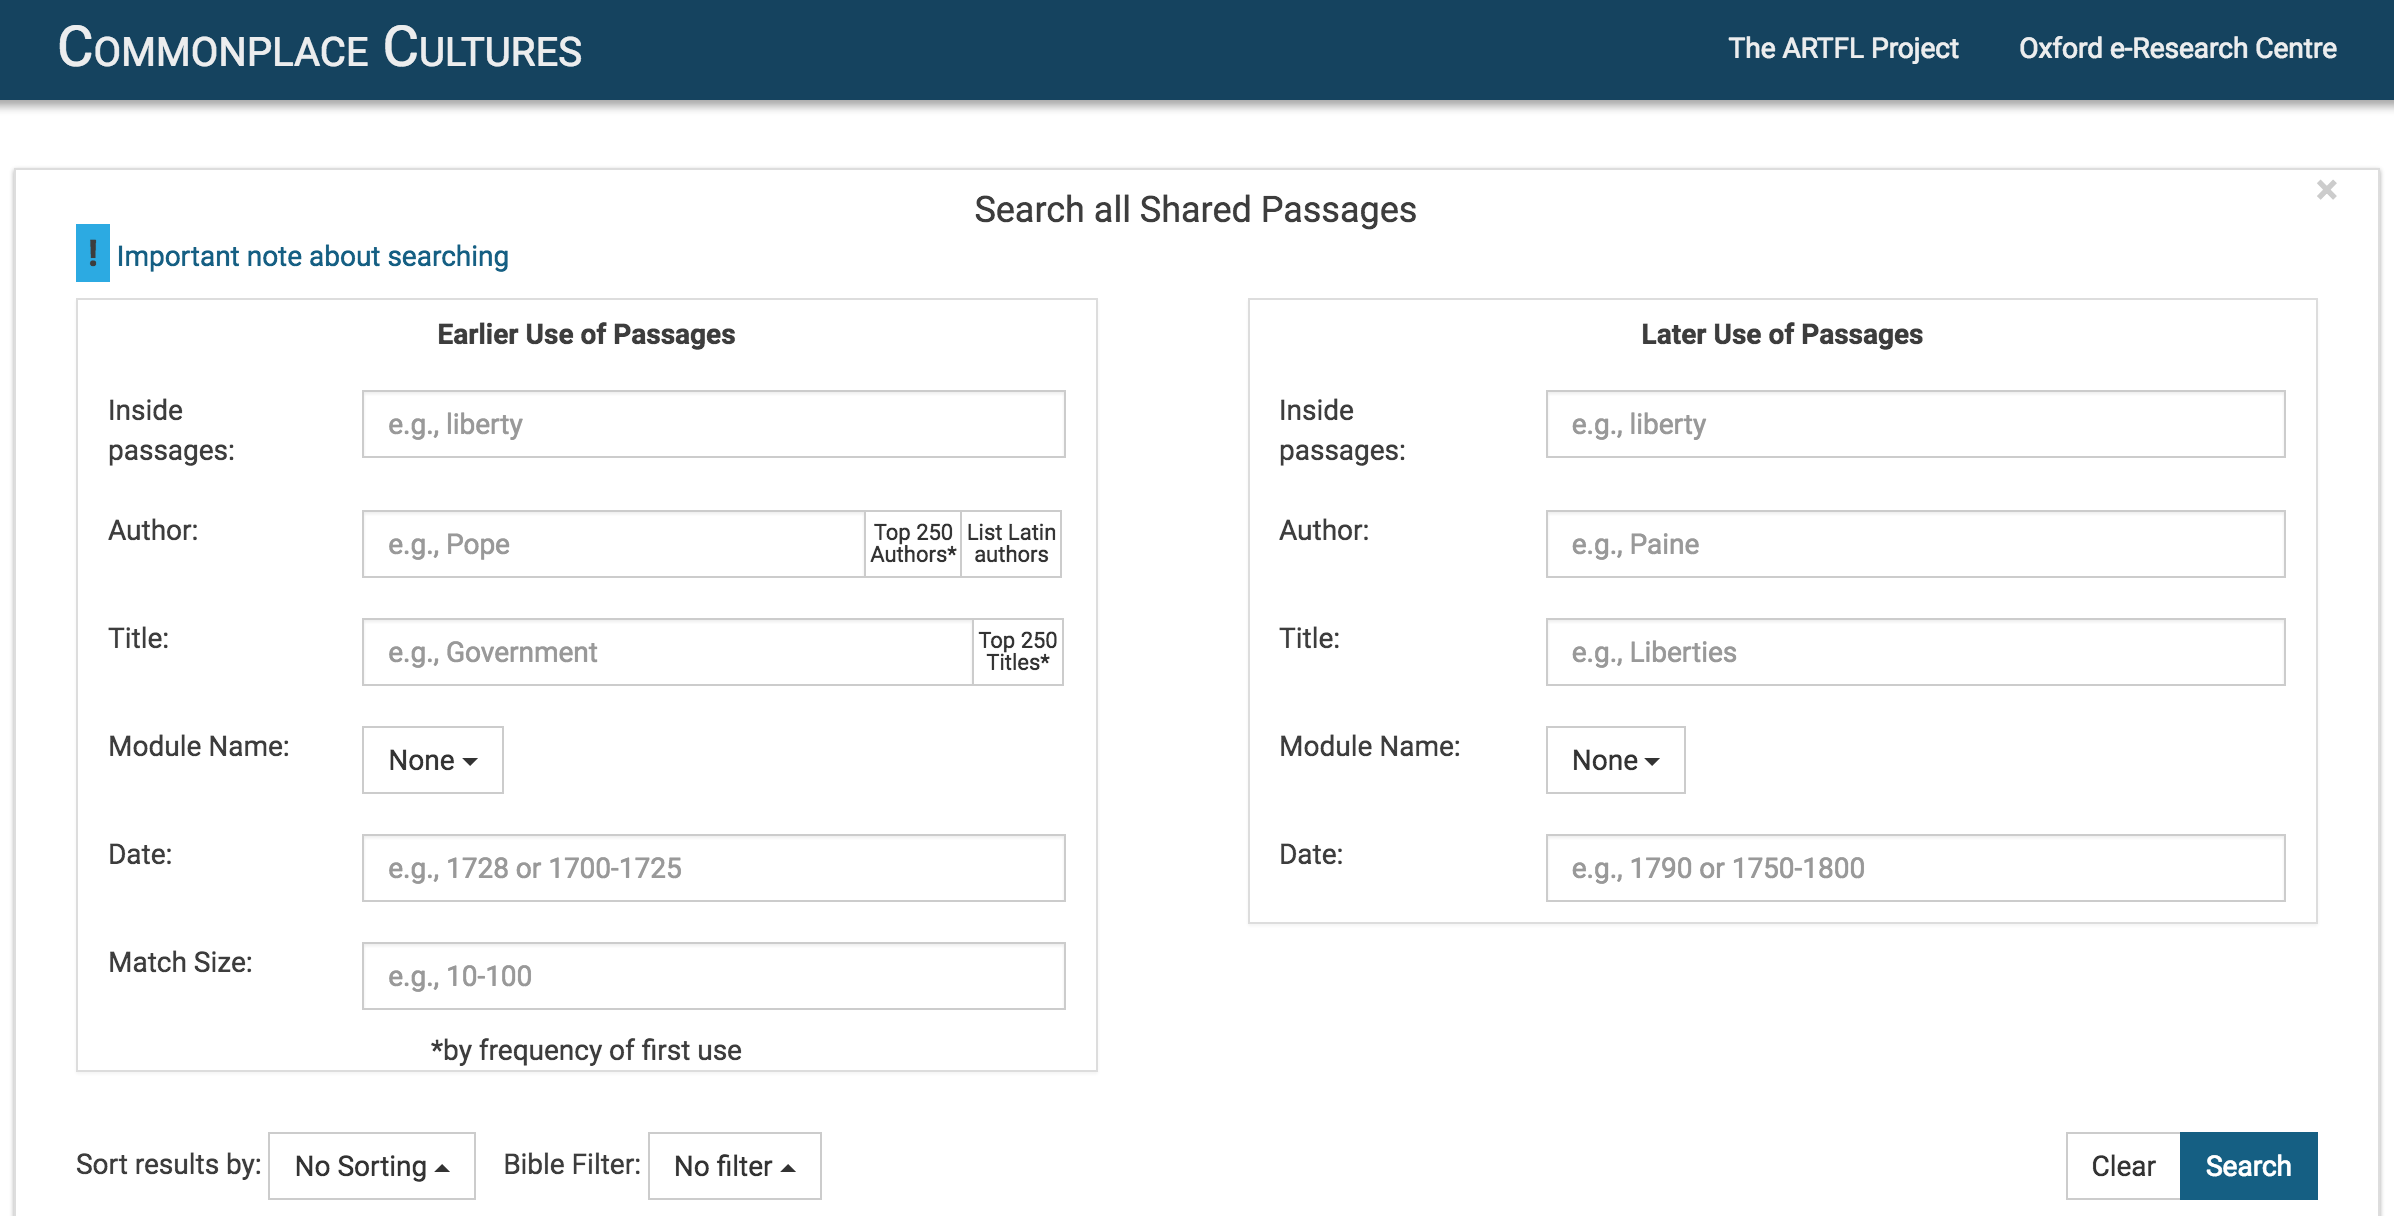 Search Commonplace Cultures Database – Commonplace Cultures